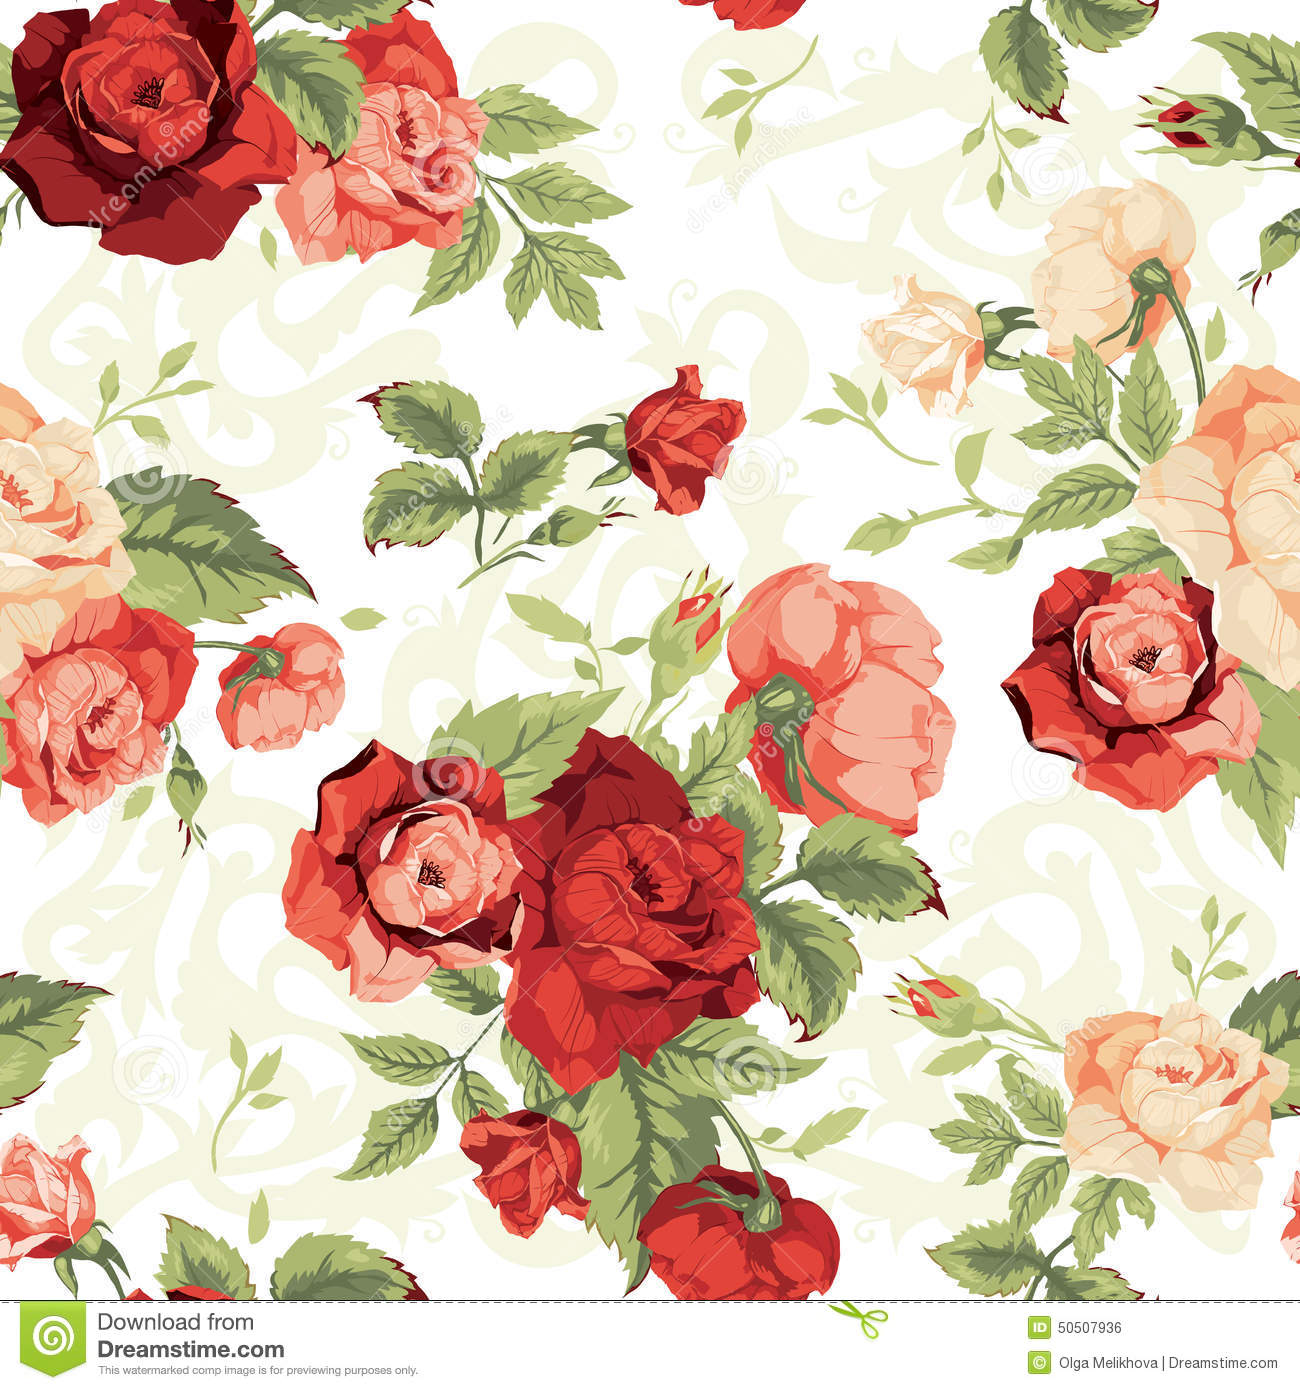 Seamless floral pattern with red and orange roses on white background